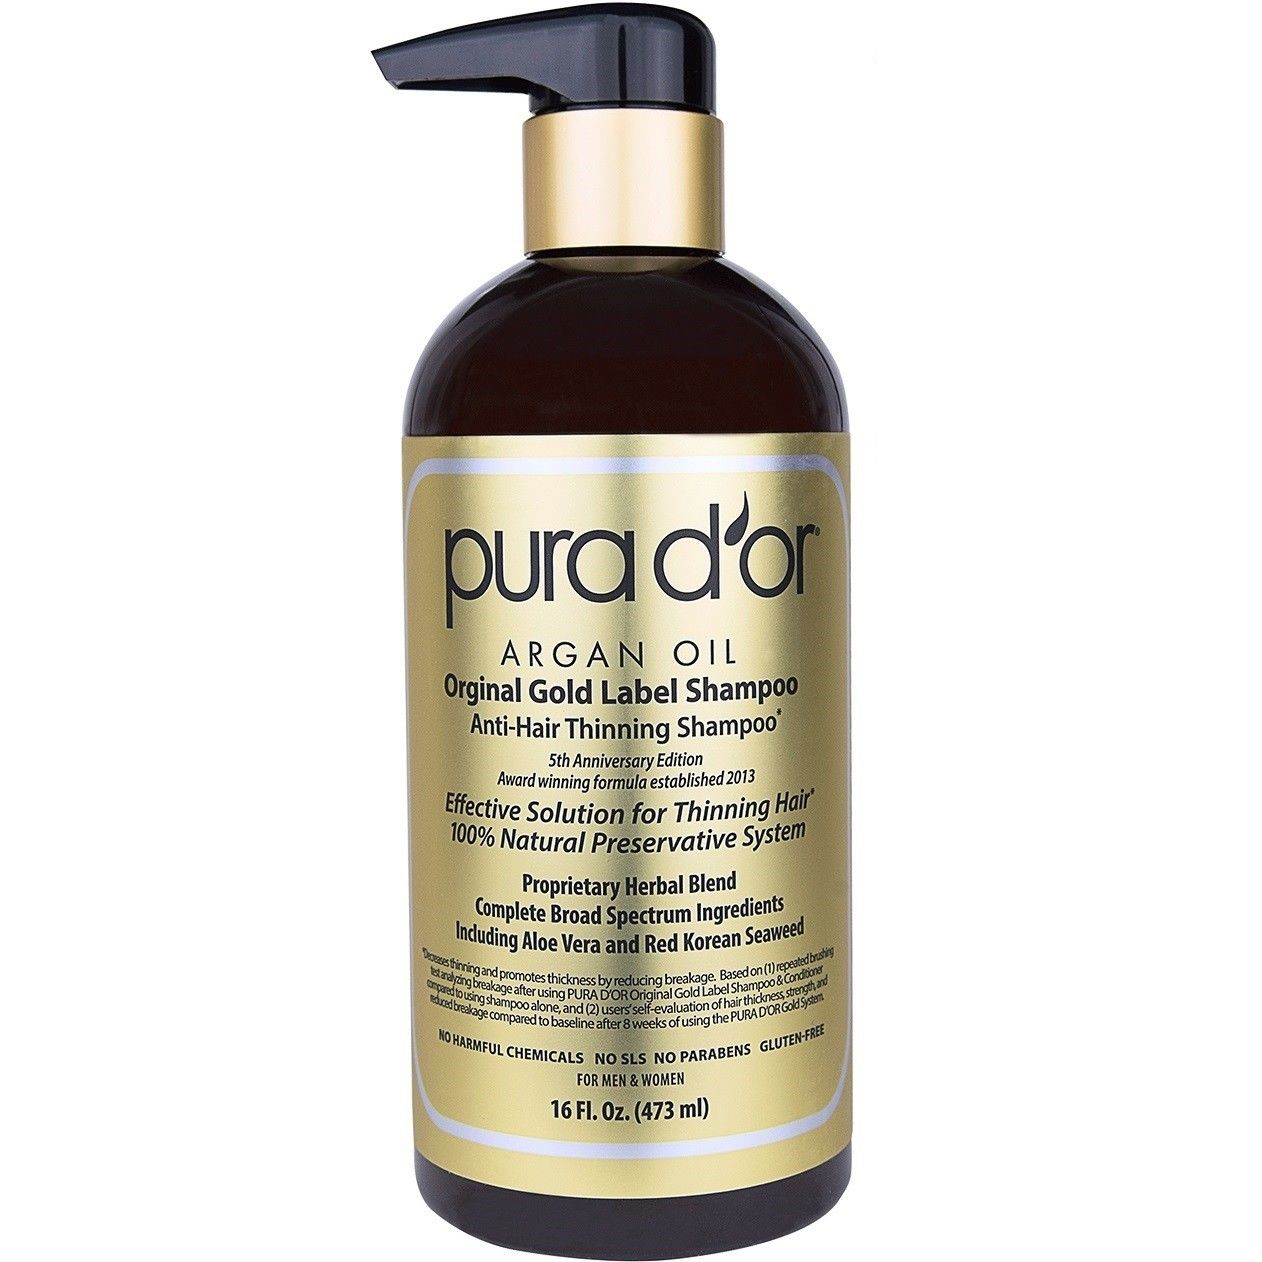 Pura D'Or Argan Oil Shampoo bottle